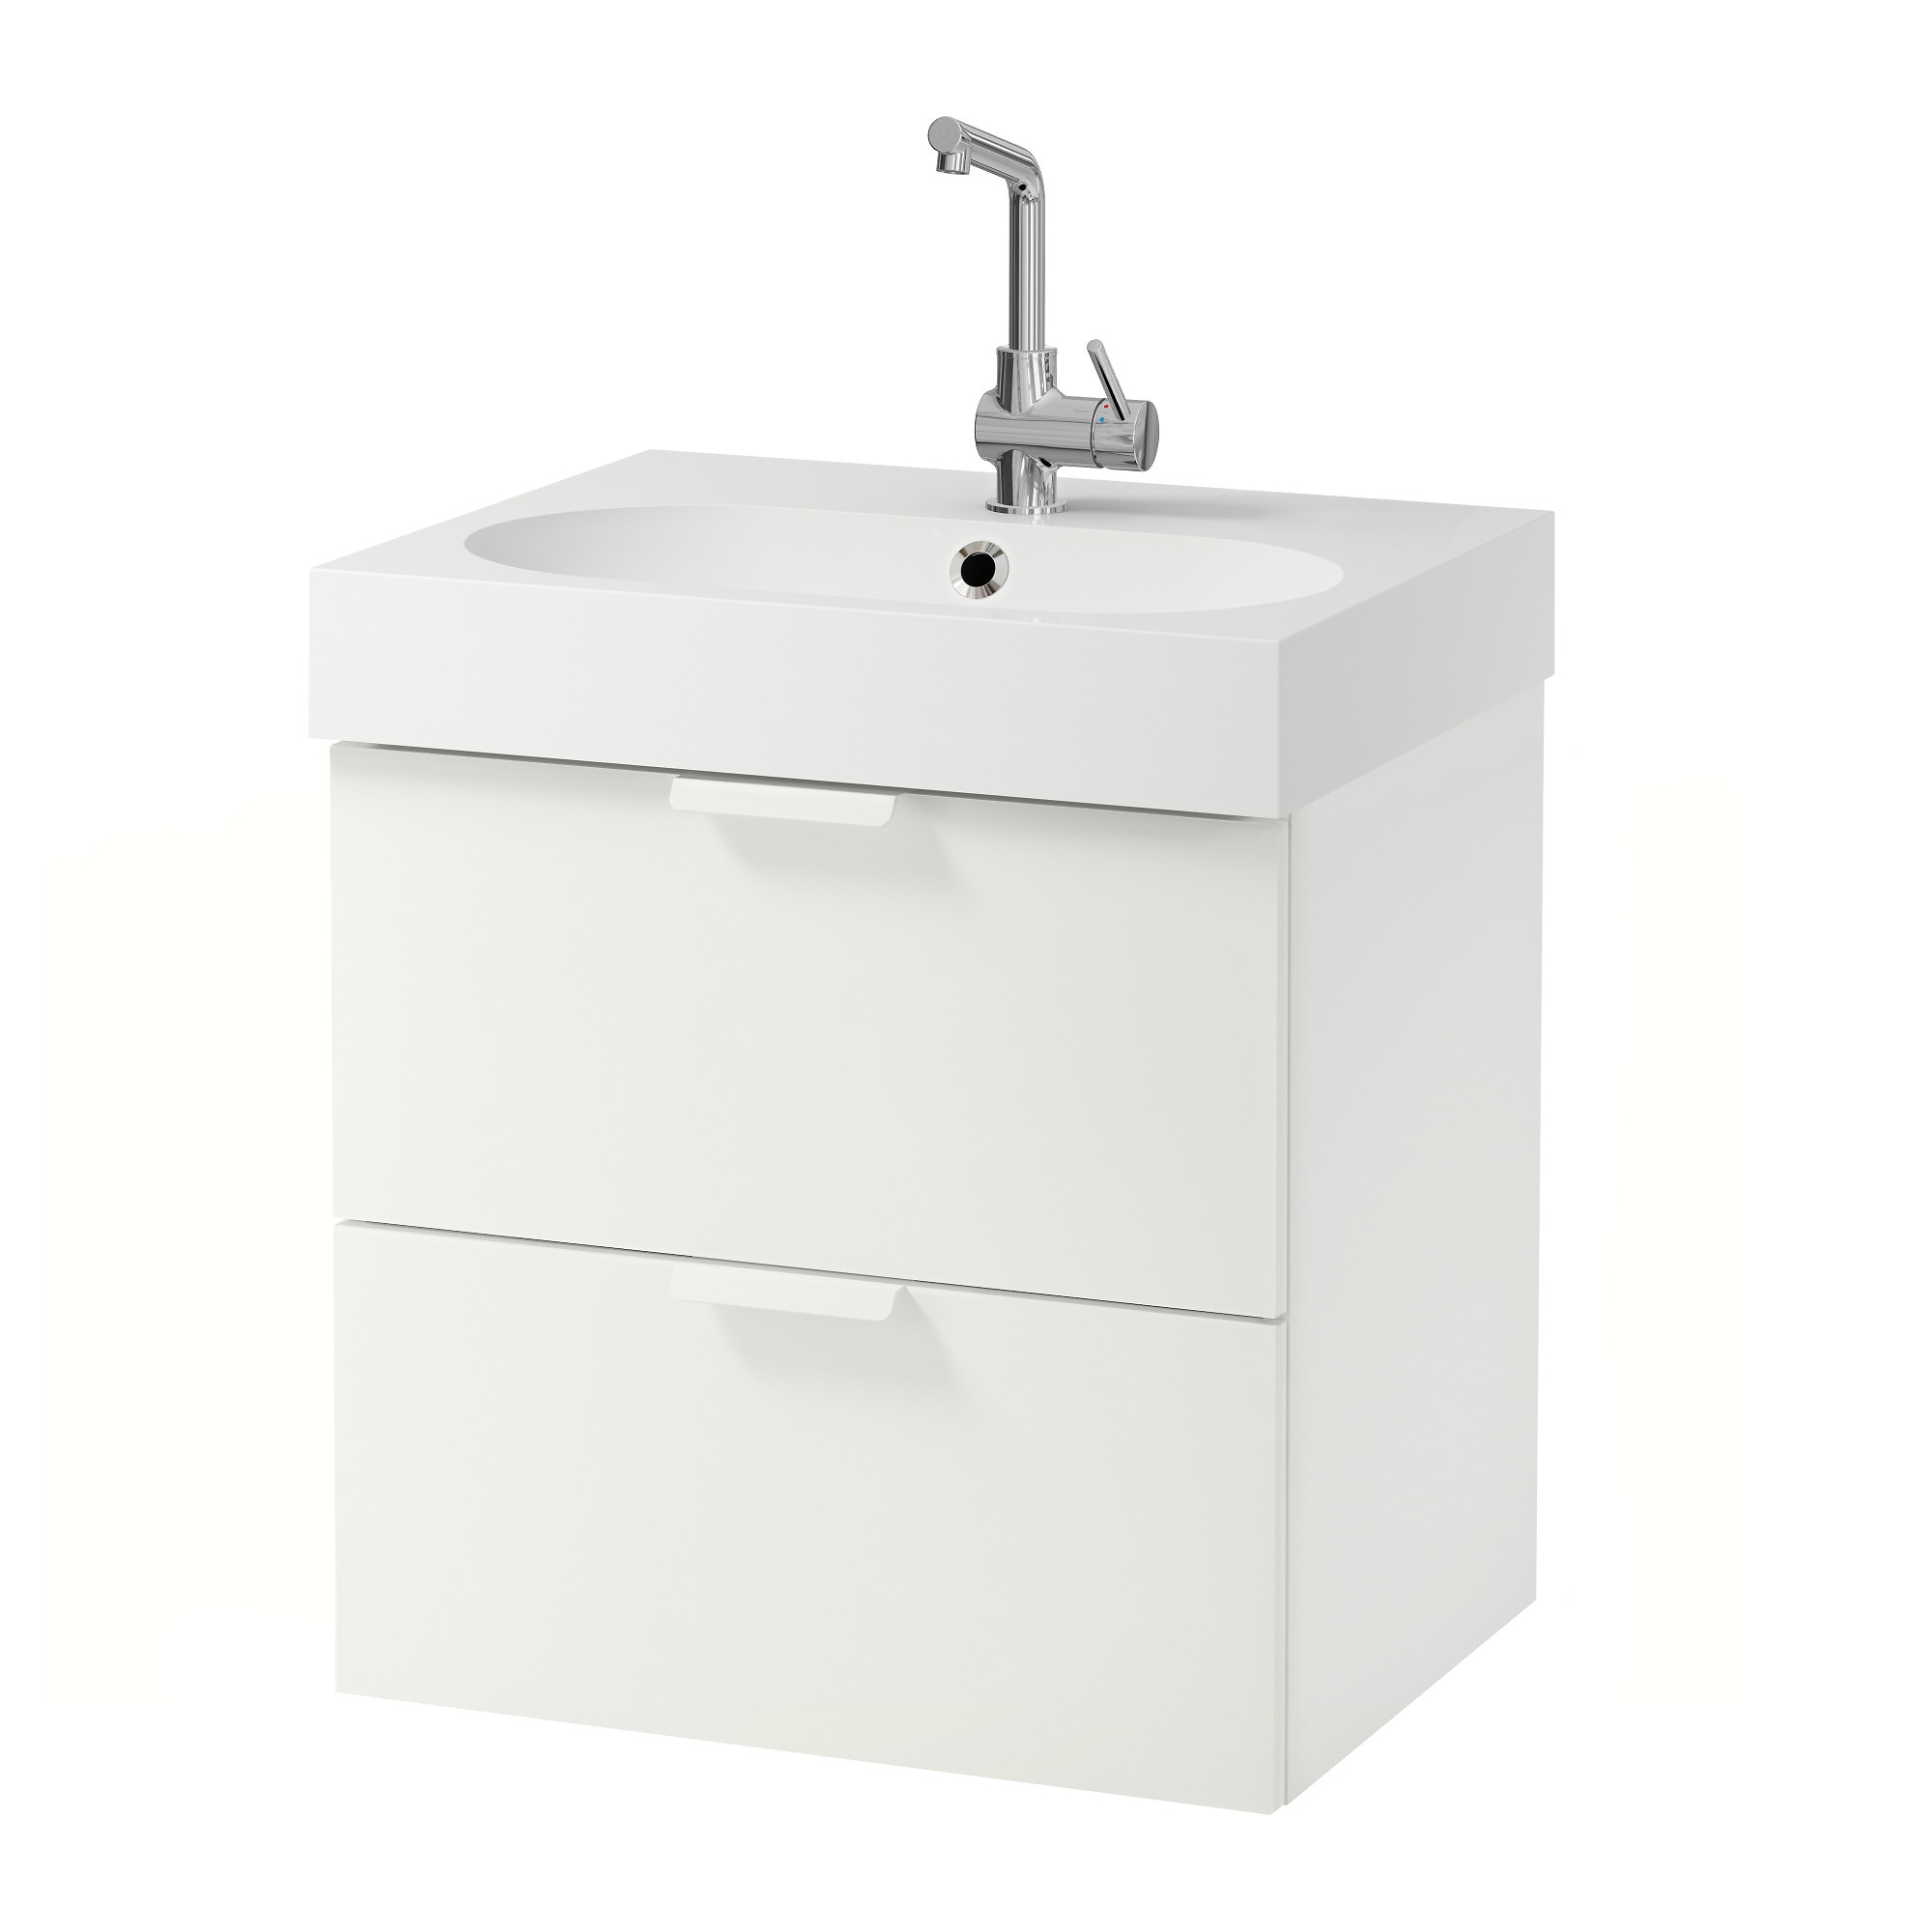 bathroom sink cabinets cheap. godmorgon / brÅviken sink cabinet with 2 drawers, white width: 24 3/8 bathroom cabinets cheap